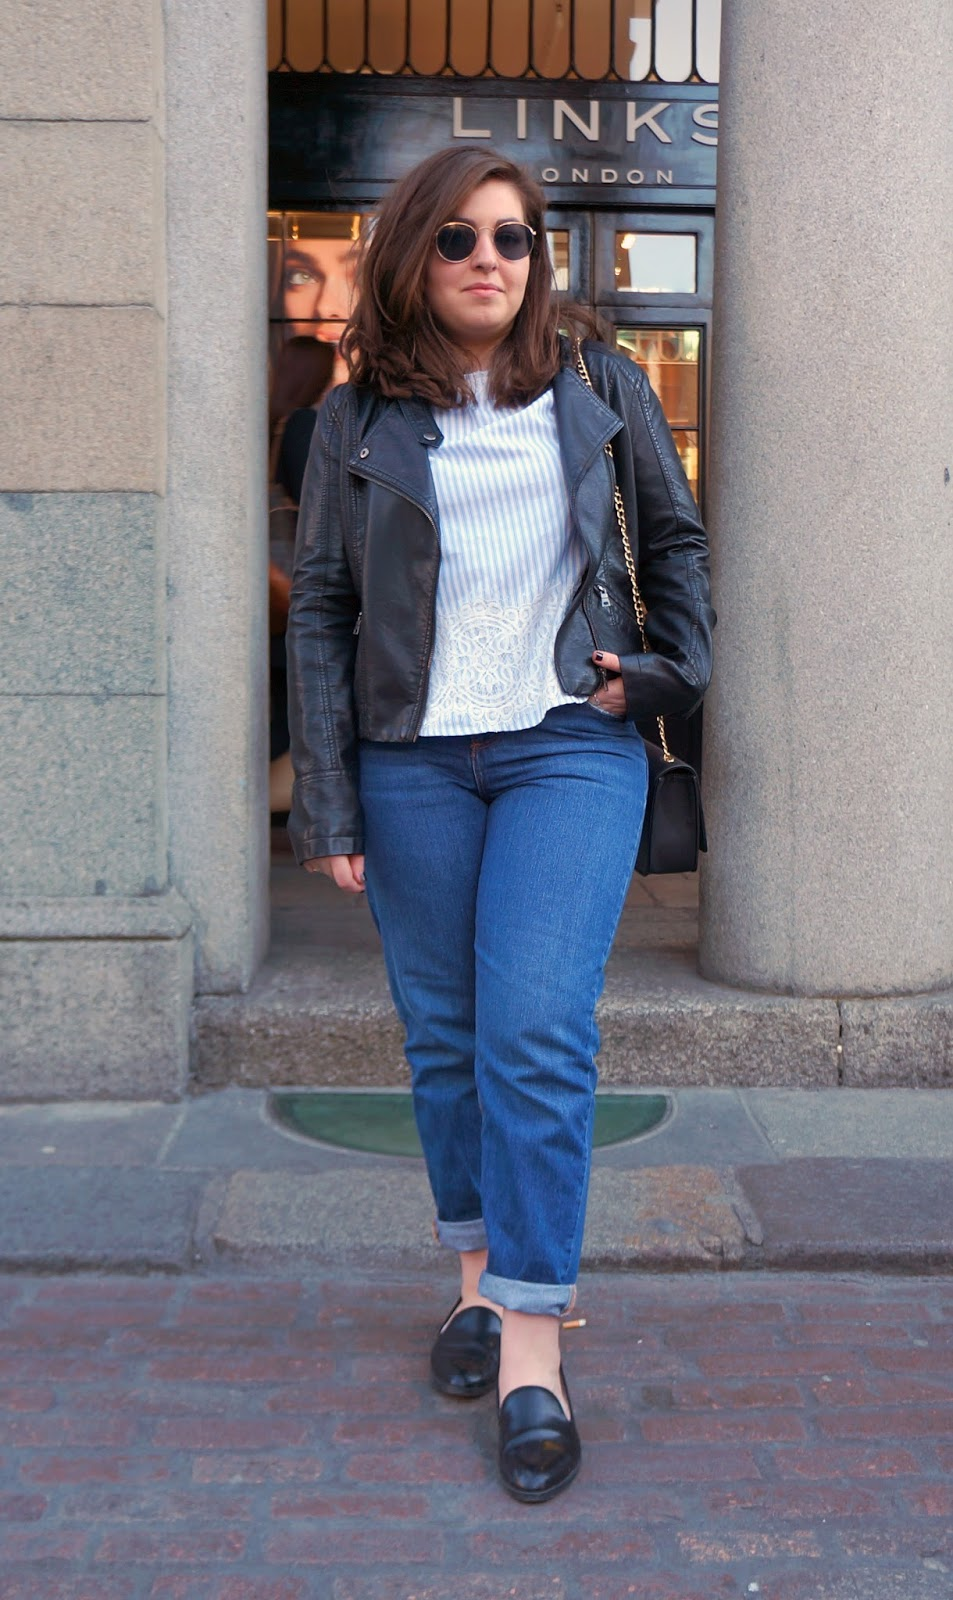 Full outfit styled with leather jacket